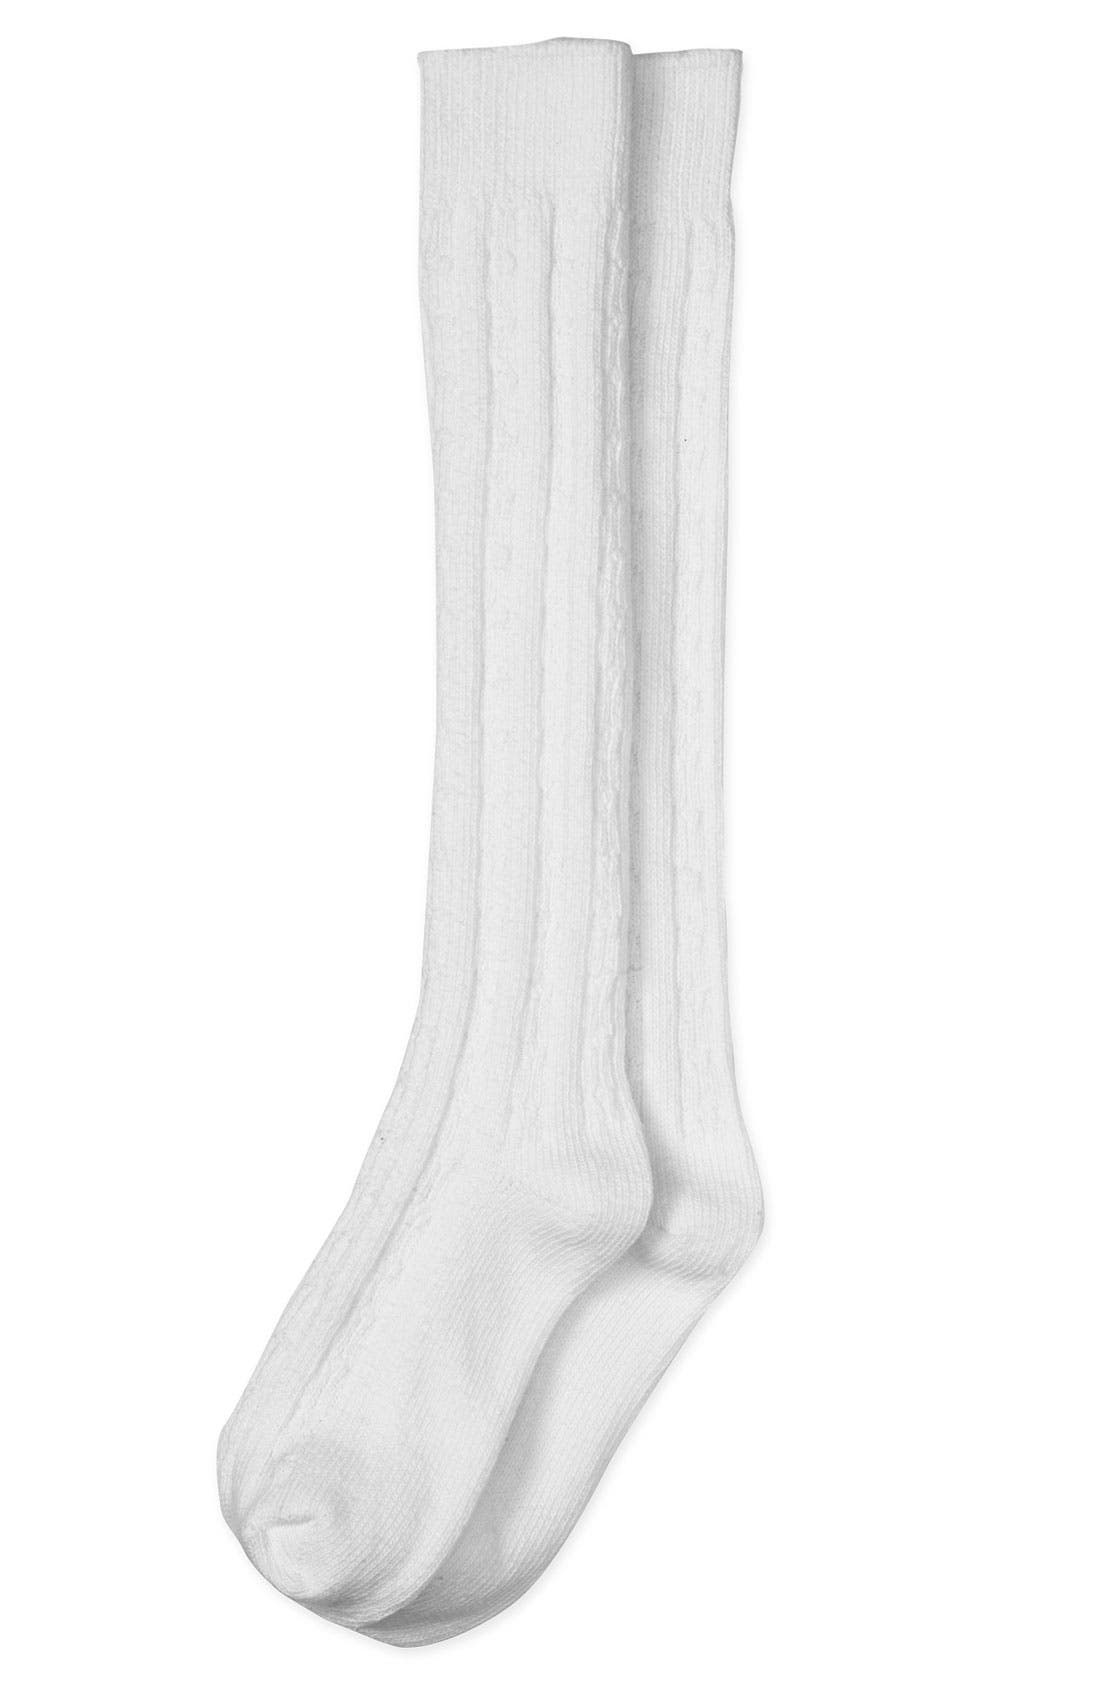 Main Image - Nordstrom Cable Knit Knee High Socks (2-Pack) (Girls)